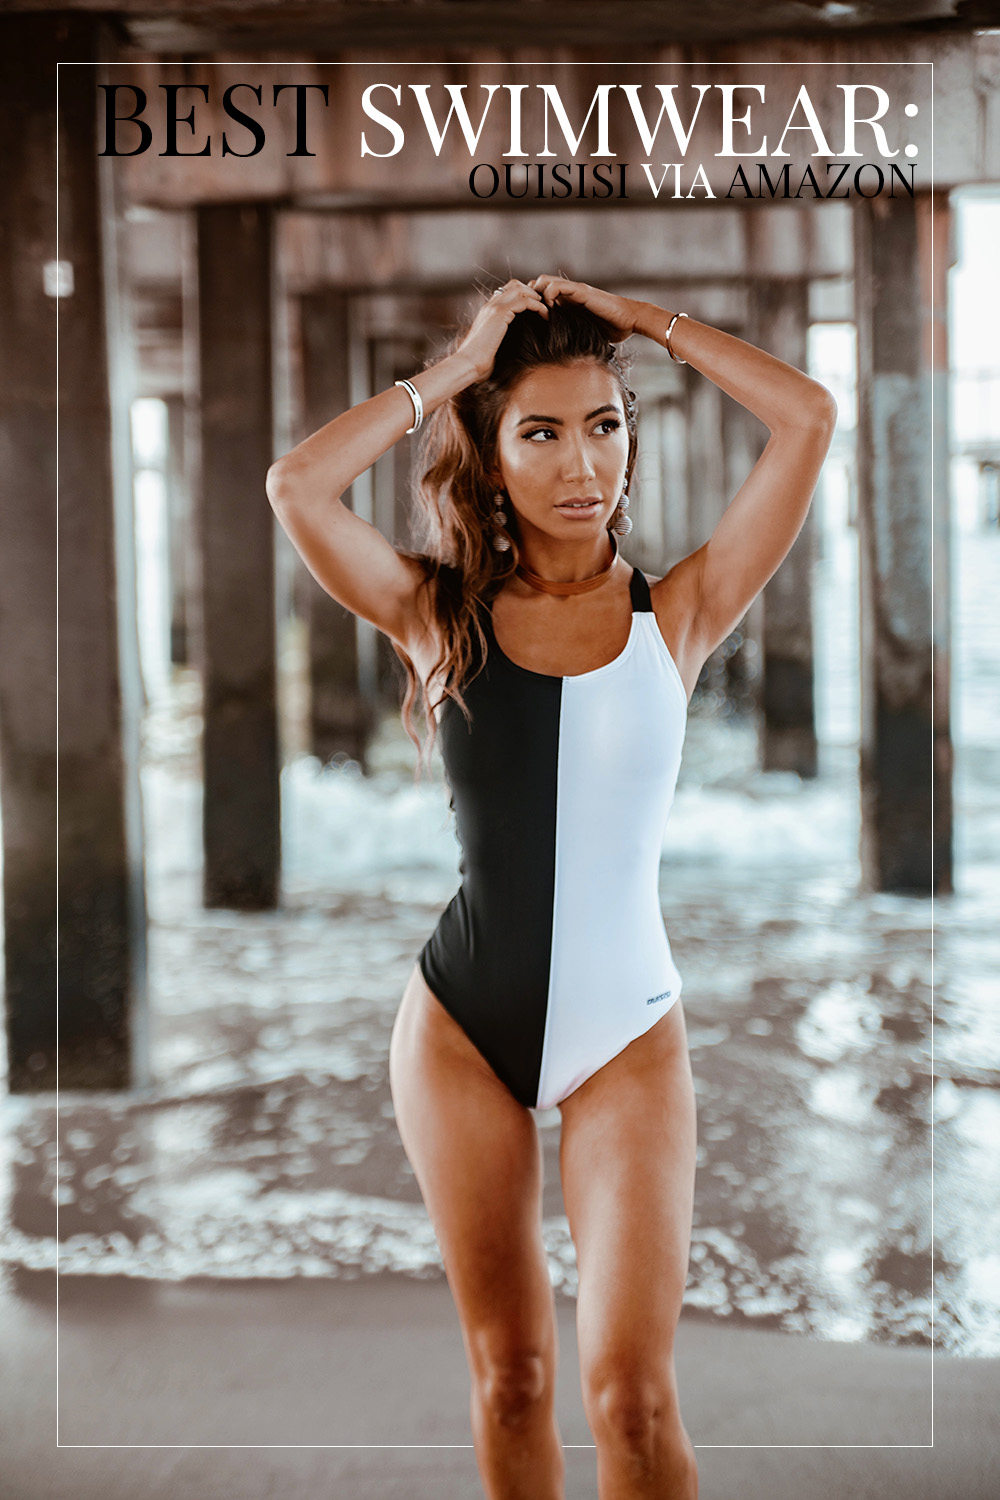 Ulia Ali in Ouisisi swimsuit. Amazon swimwear review.